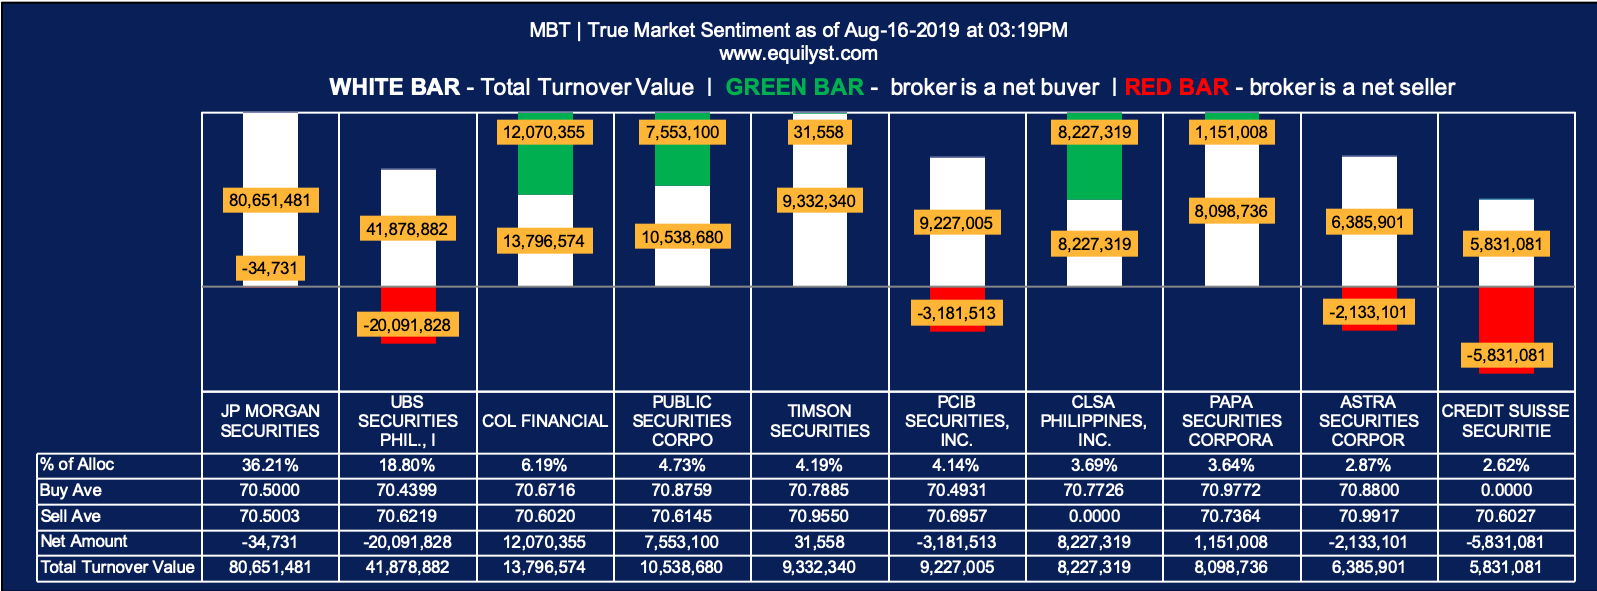 Metropolitan Bank and Trust Company (MBT) - True Market Sentiment Intraday 1 - 8.16.2019